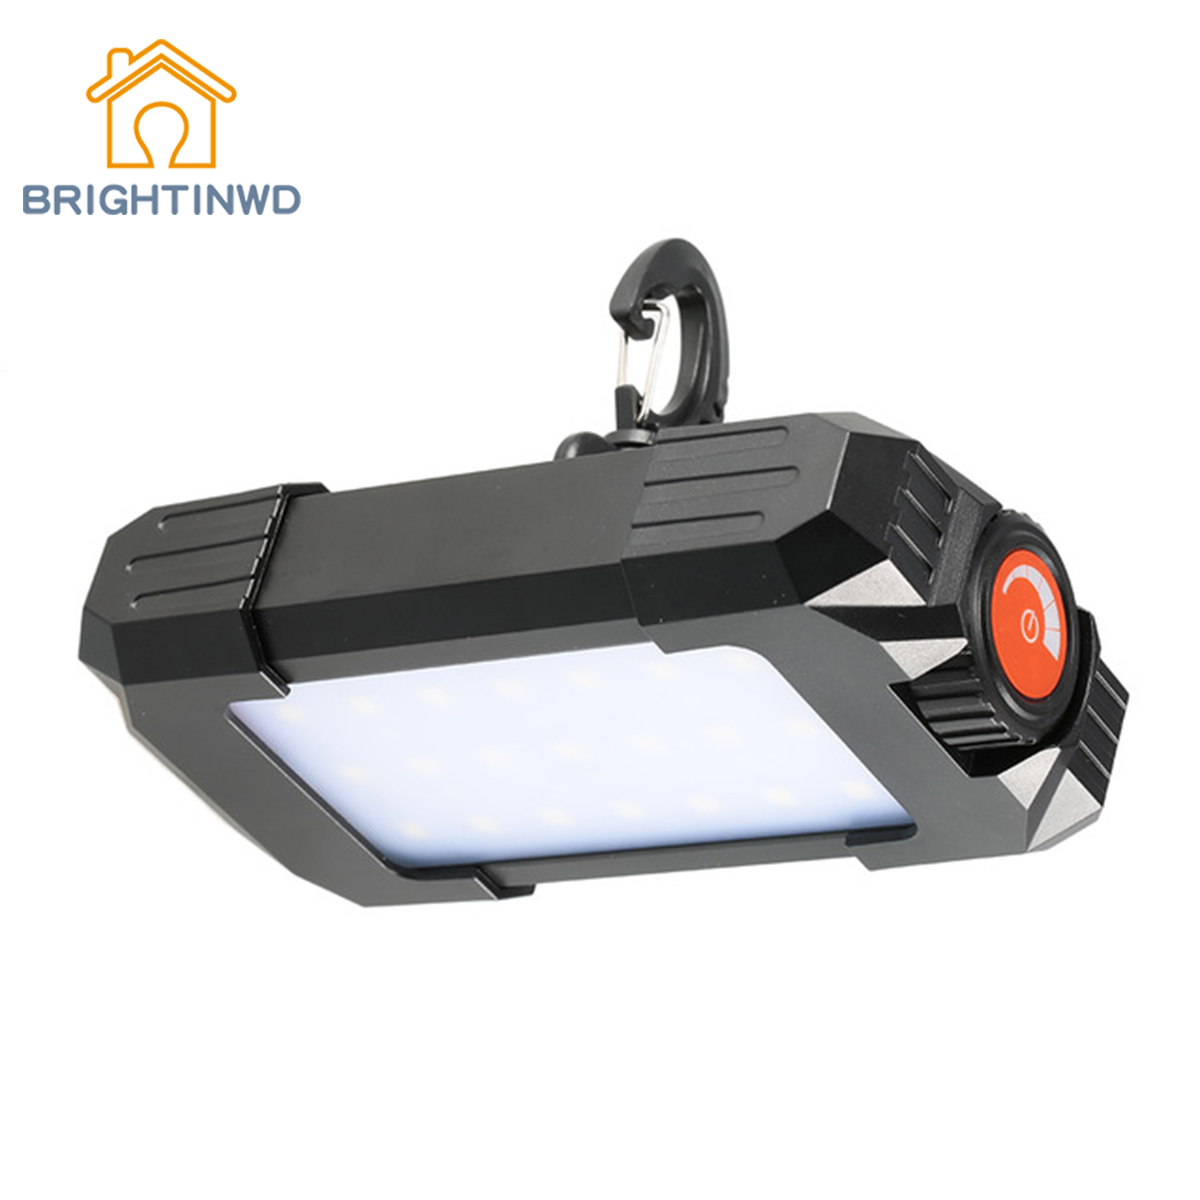 BRIGHTINWD 10W 500LM Camping Tent Light Outdoor Rechargeable Portable 27 LEDs Lantern Lamp Flasher Flashligh with USB interface